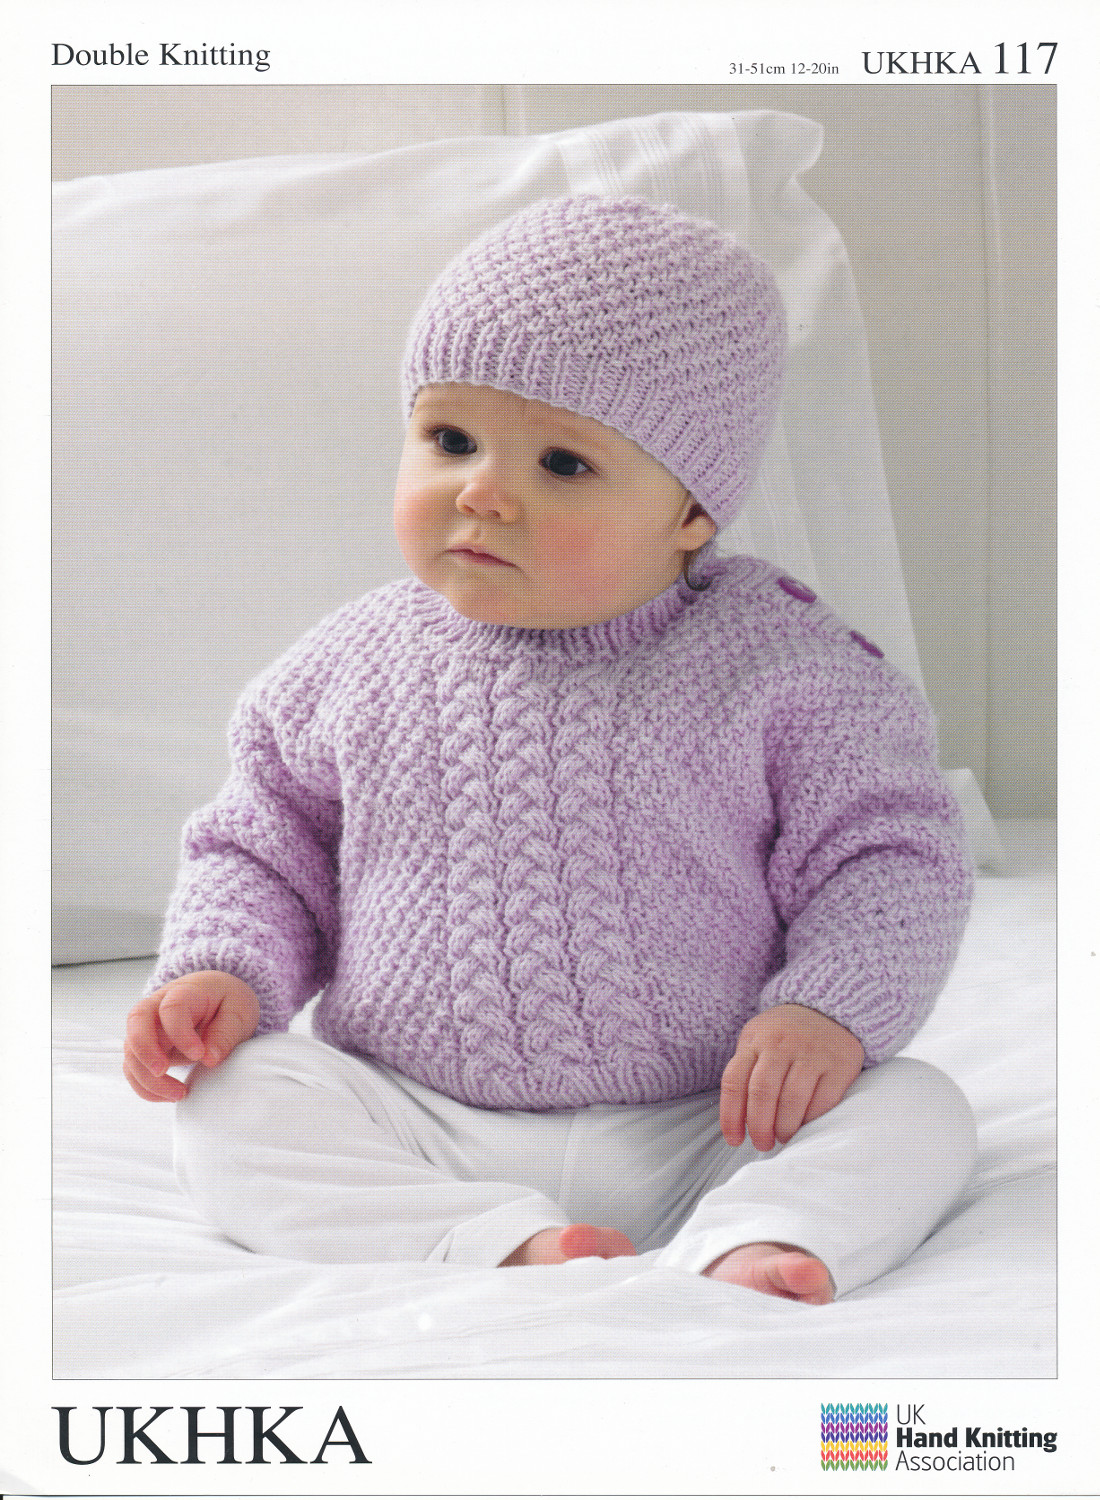 Knitting Patterns For Babies Double Knitting : Double Knitting DK Pattern Baby Cable or Moss Stitch Sweater Scarf Hat UKHKA ...